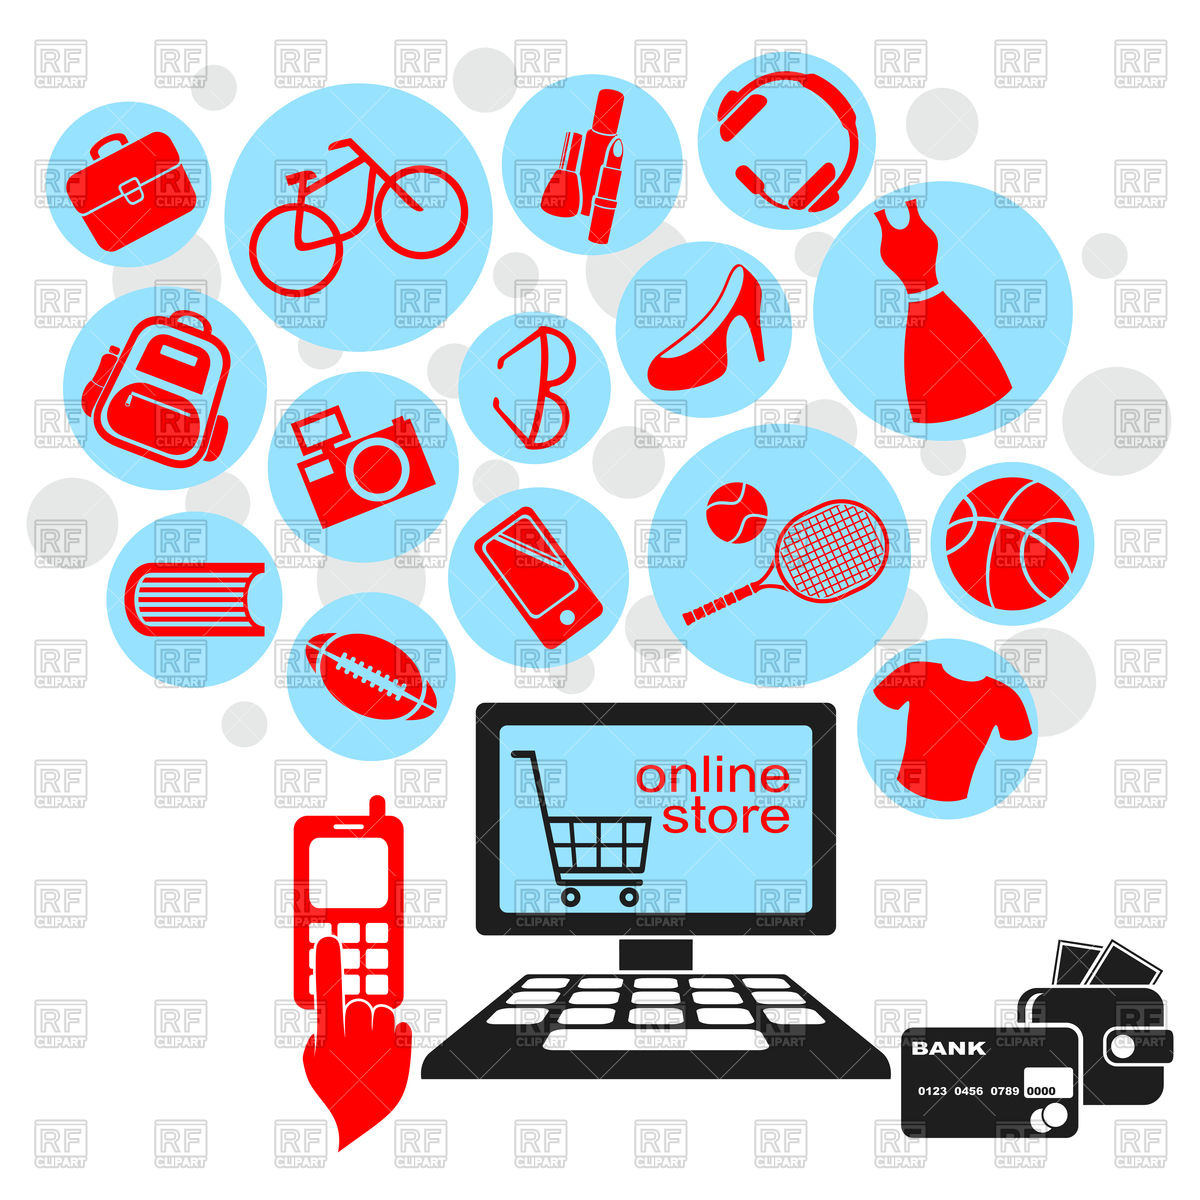 Online Store icons Stock Vector Image.